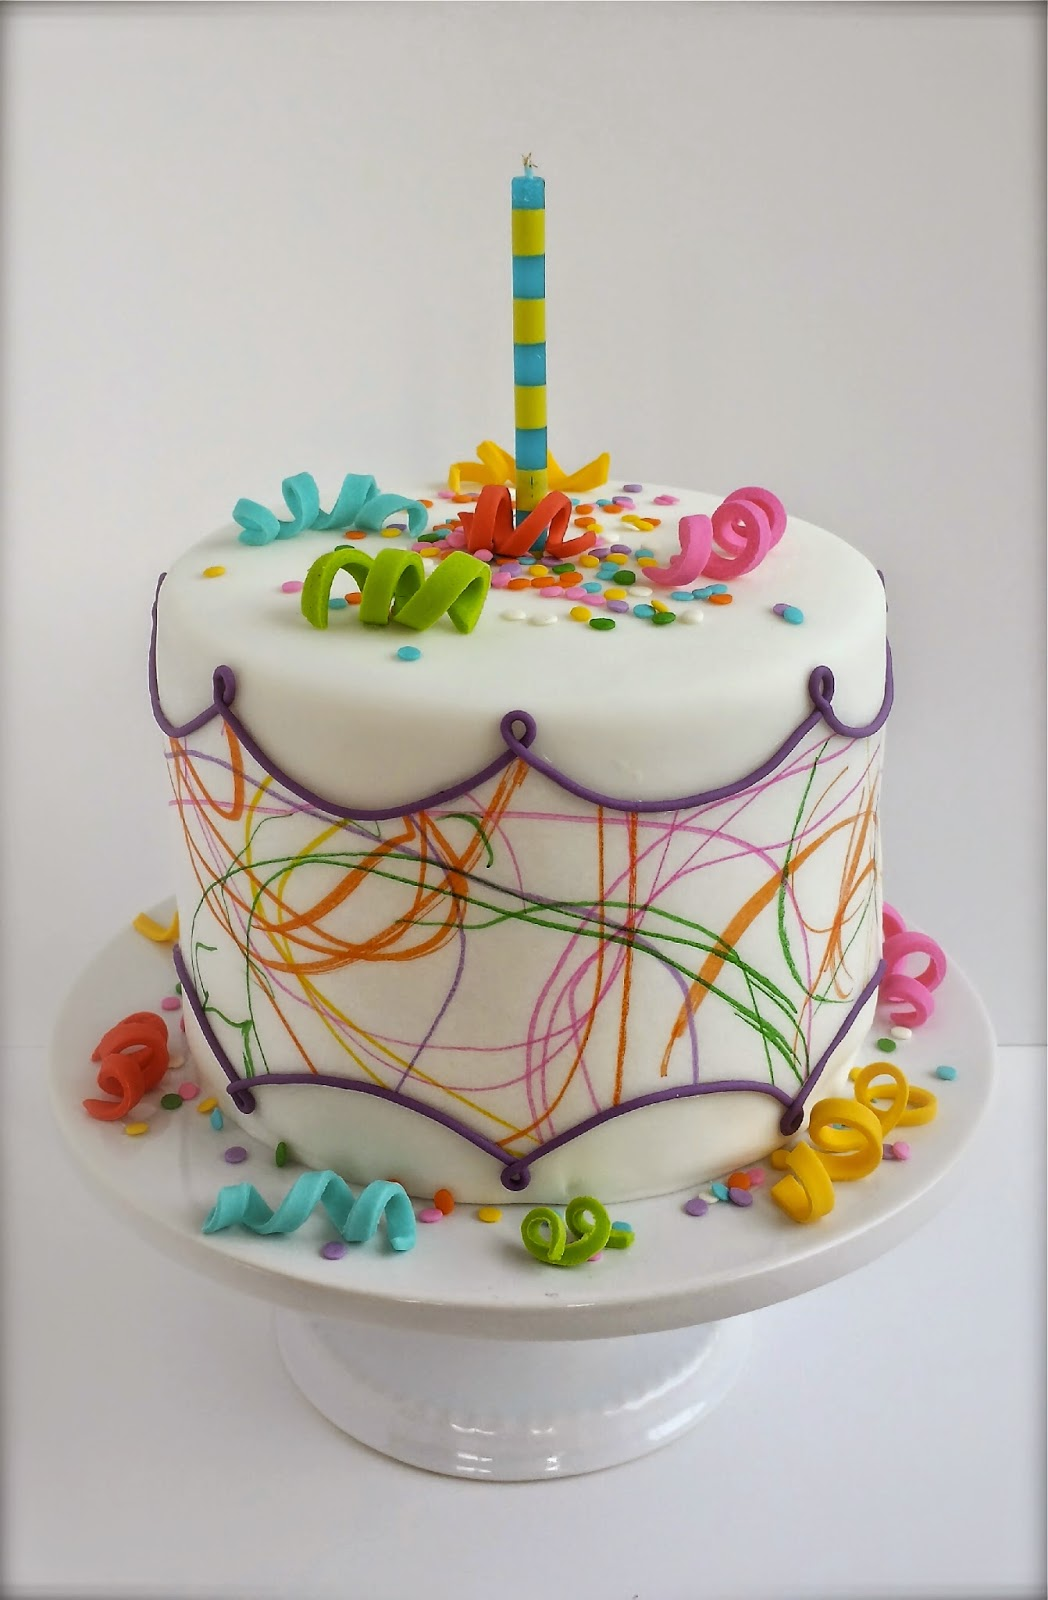 Cake Artist Cakes : Cake Blog: Toddler Art Birthday Cake